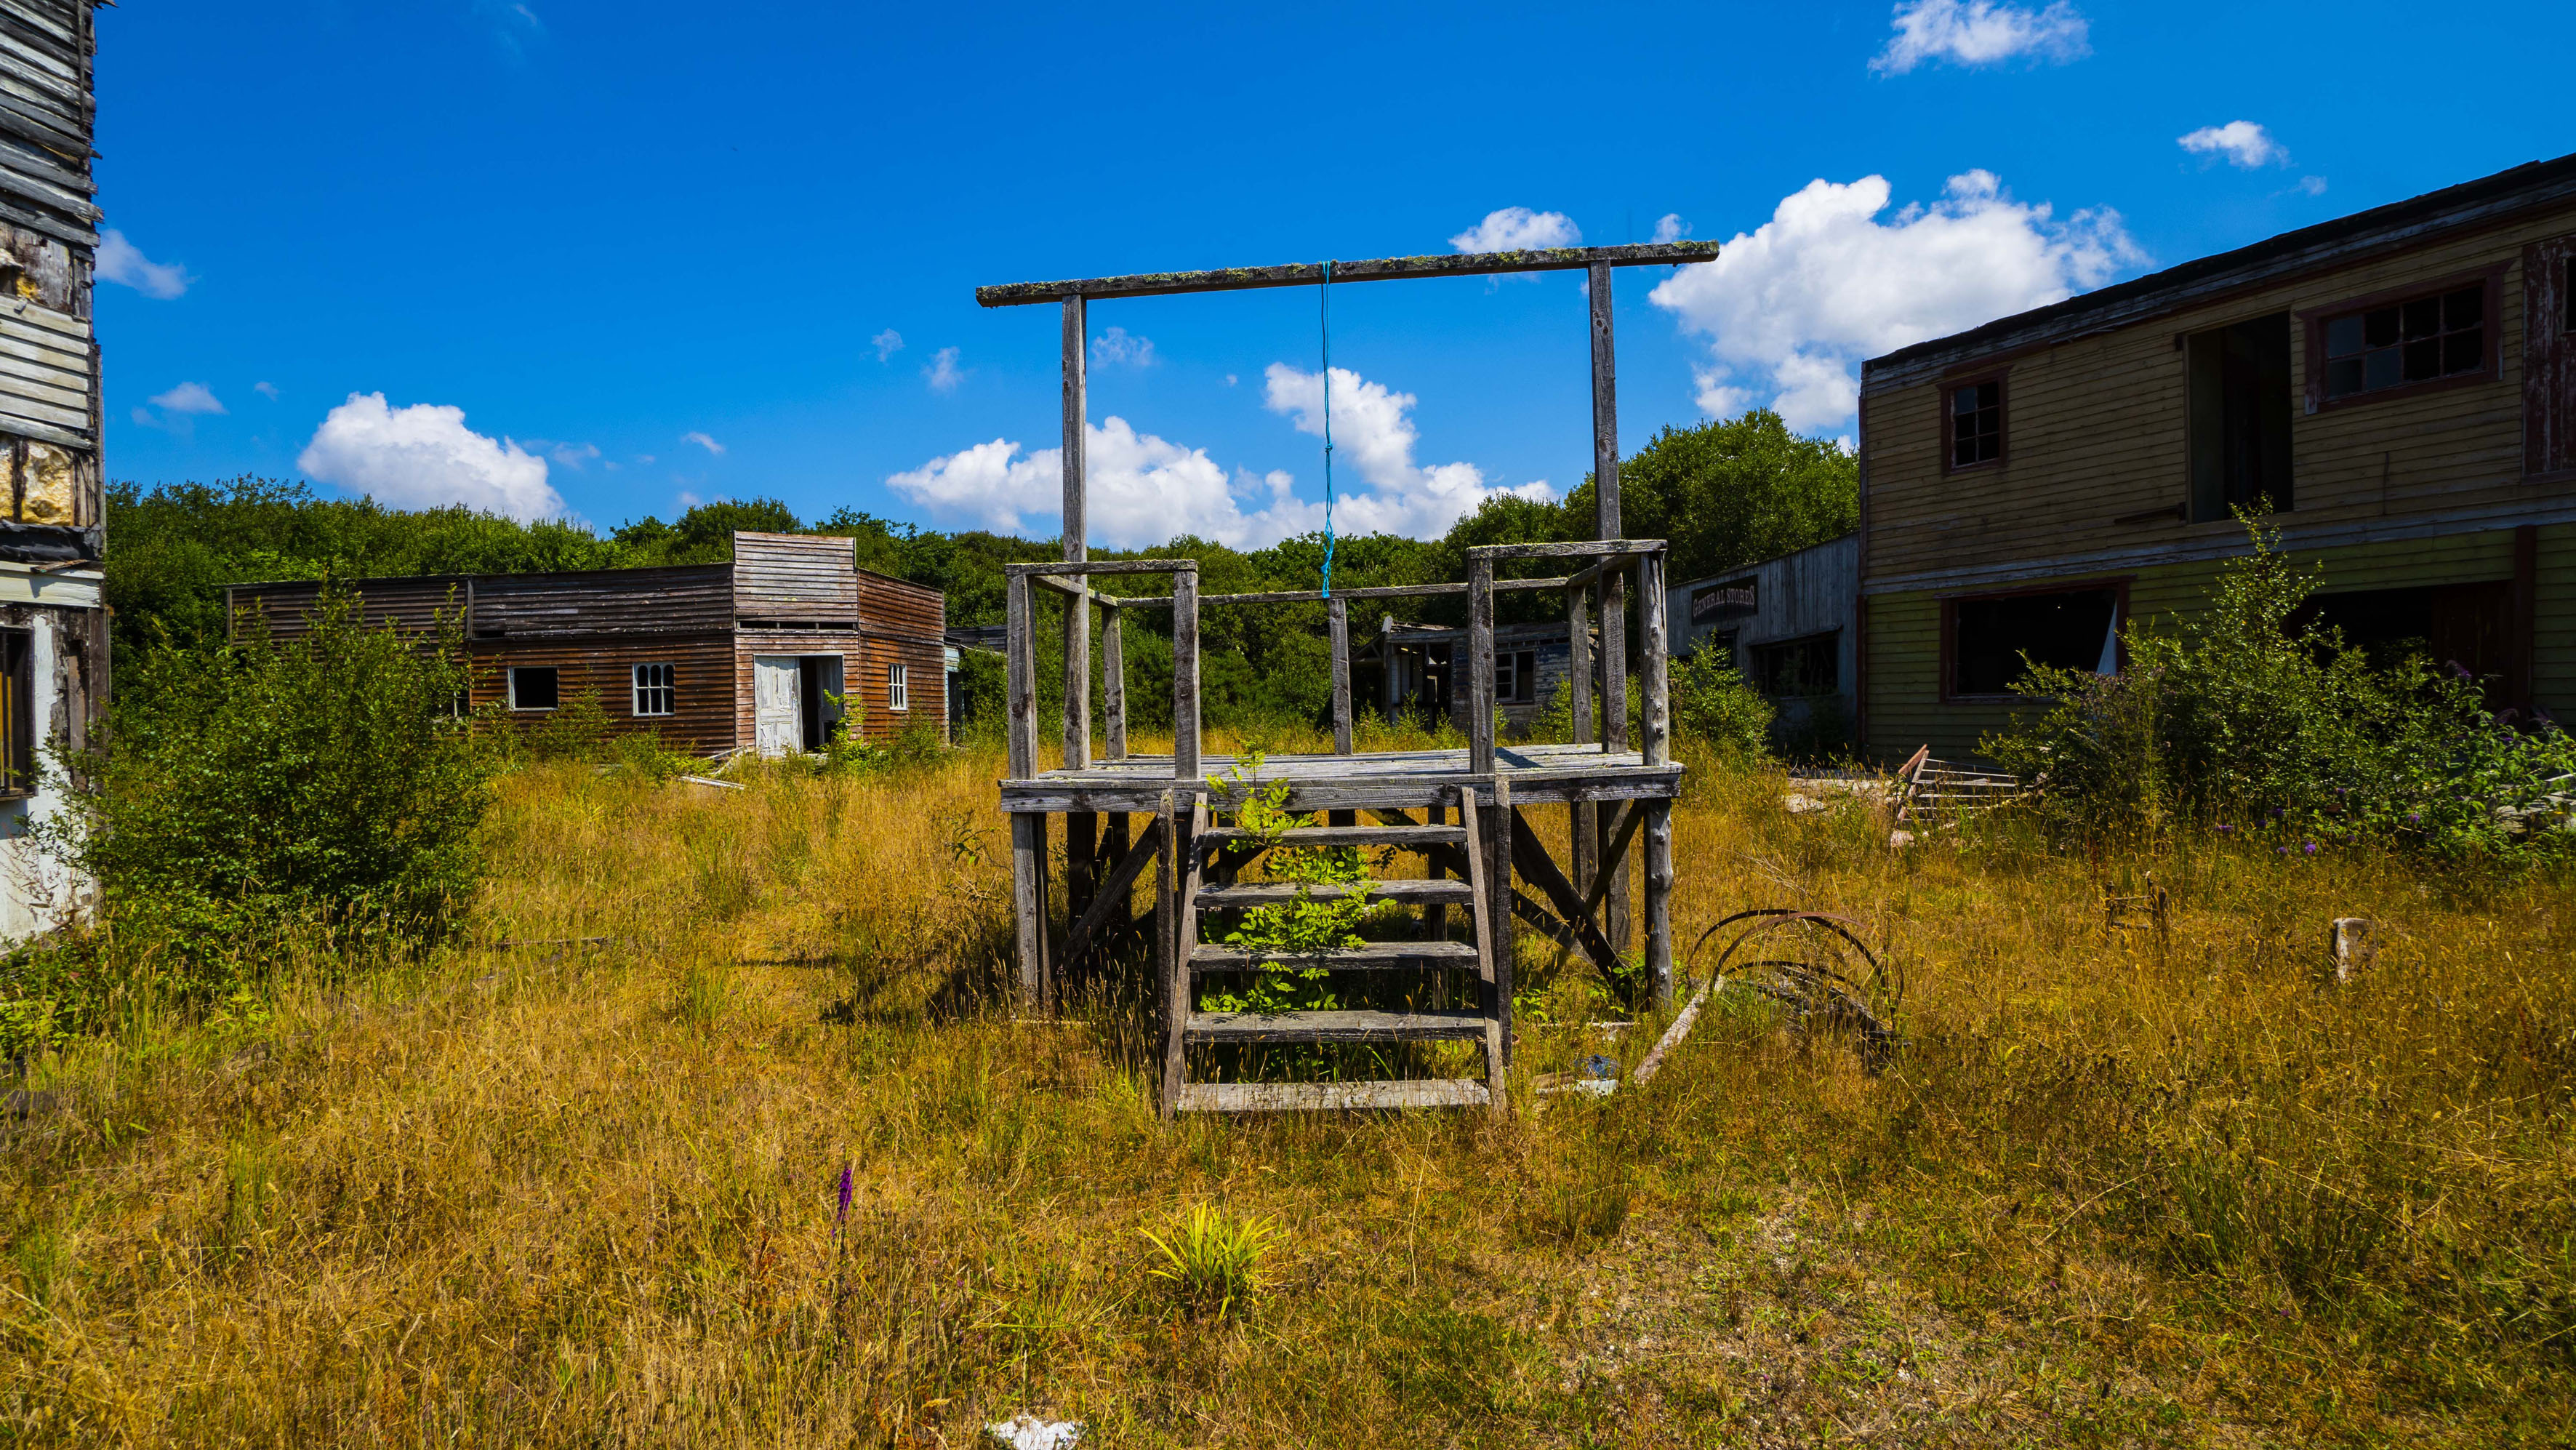 Urban Explorer Reveals Uk S Abandoned Wild West World Left Like A Ghost Town Caters News Agency